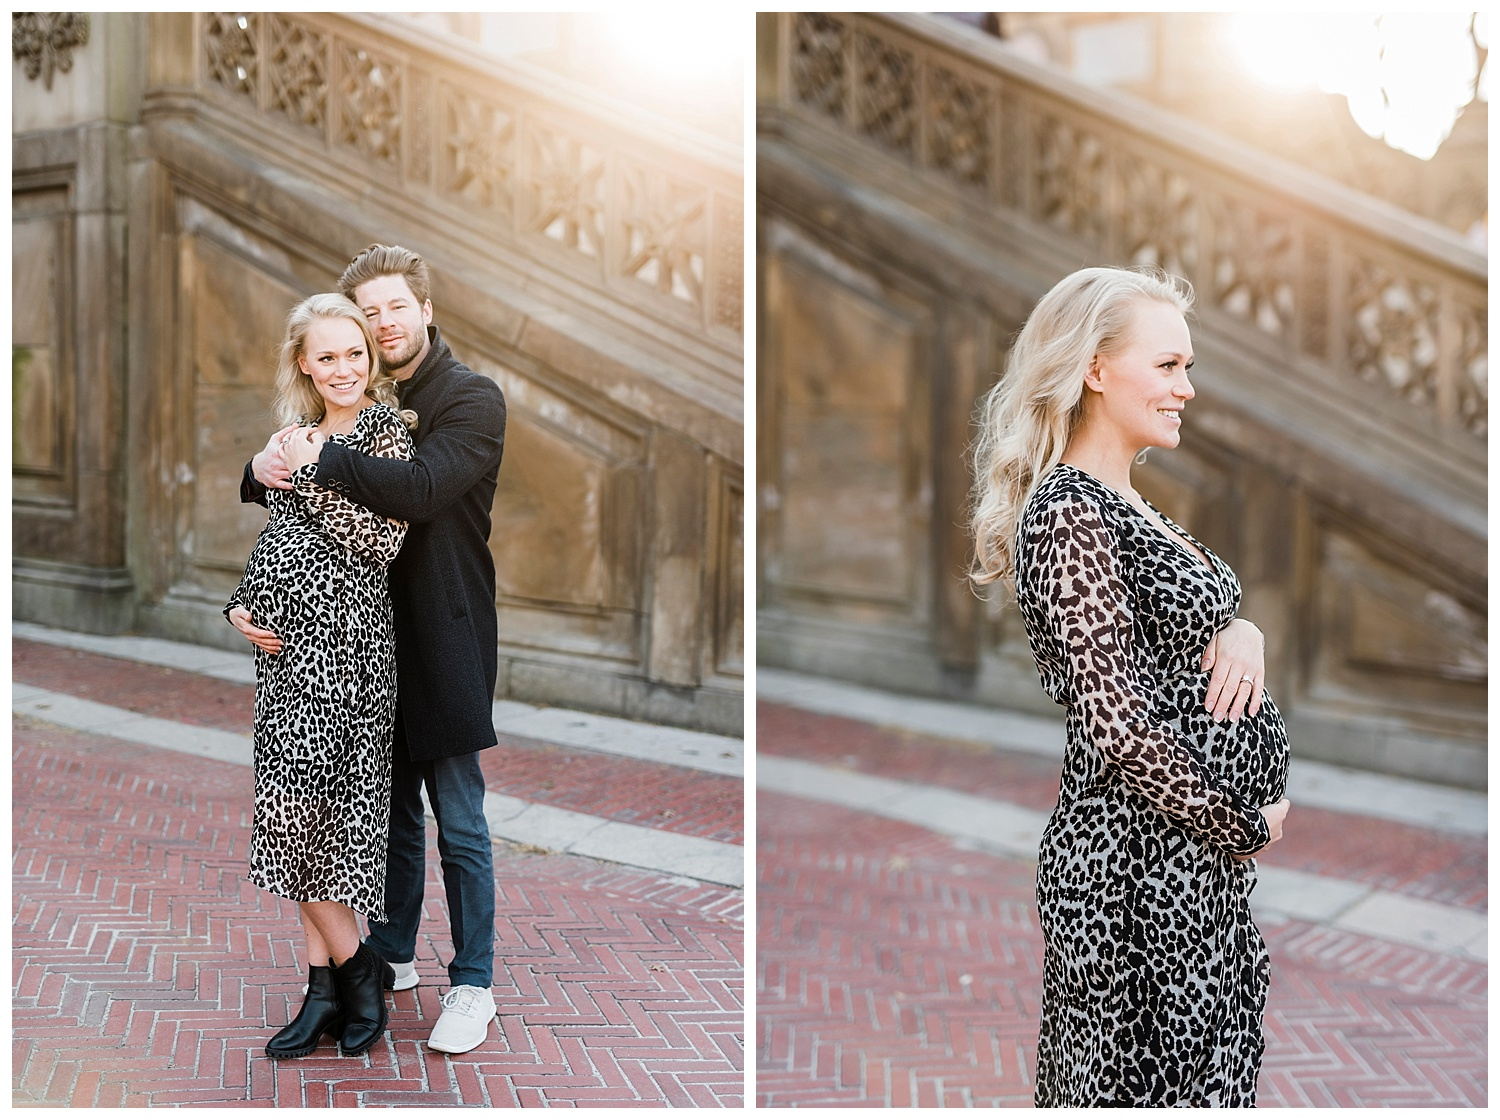 Krista_Maternity_Photos_Central_Park_NYC_Apollo_Fields_93.jpg